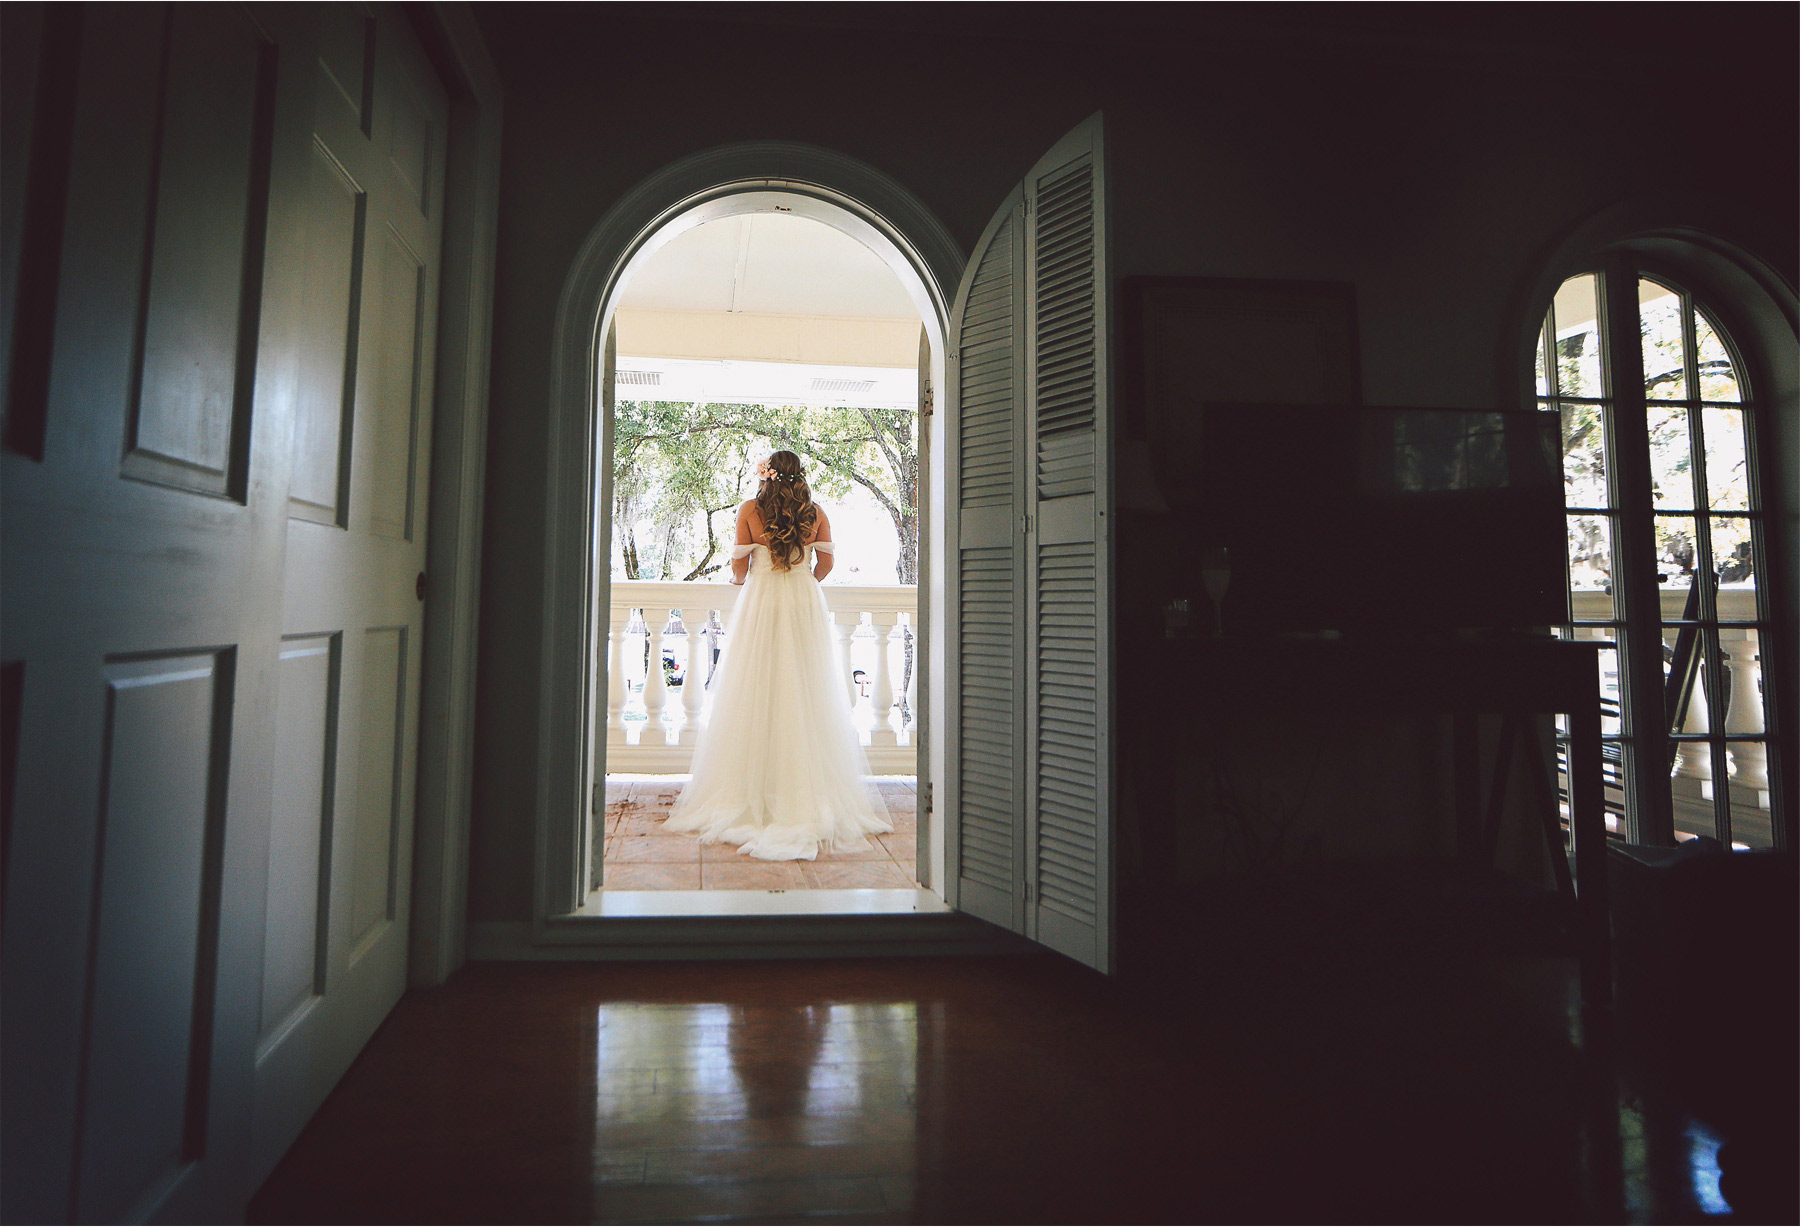 04-Brandon-Florida-Wedding-Photographer-by-Andrew-Vick-Photography-Casa-Lantana-Spring-Getting-Ready-Bride-Dress-Flower-Crown-Balcony-Vintage-Kristianna-and-Ben.jpg